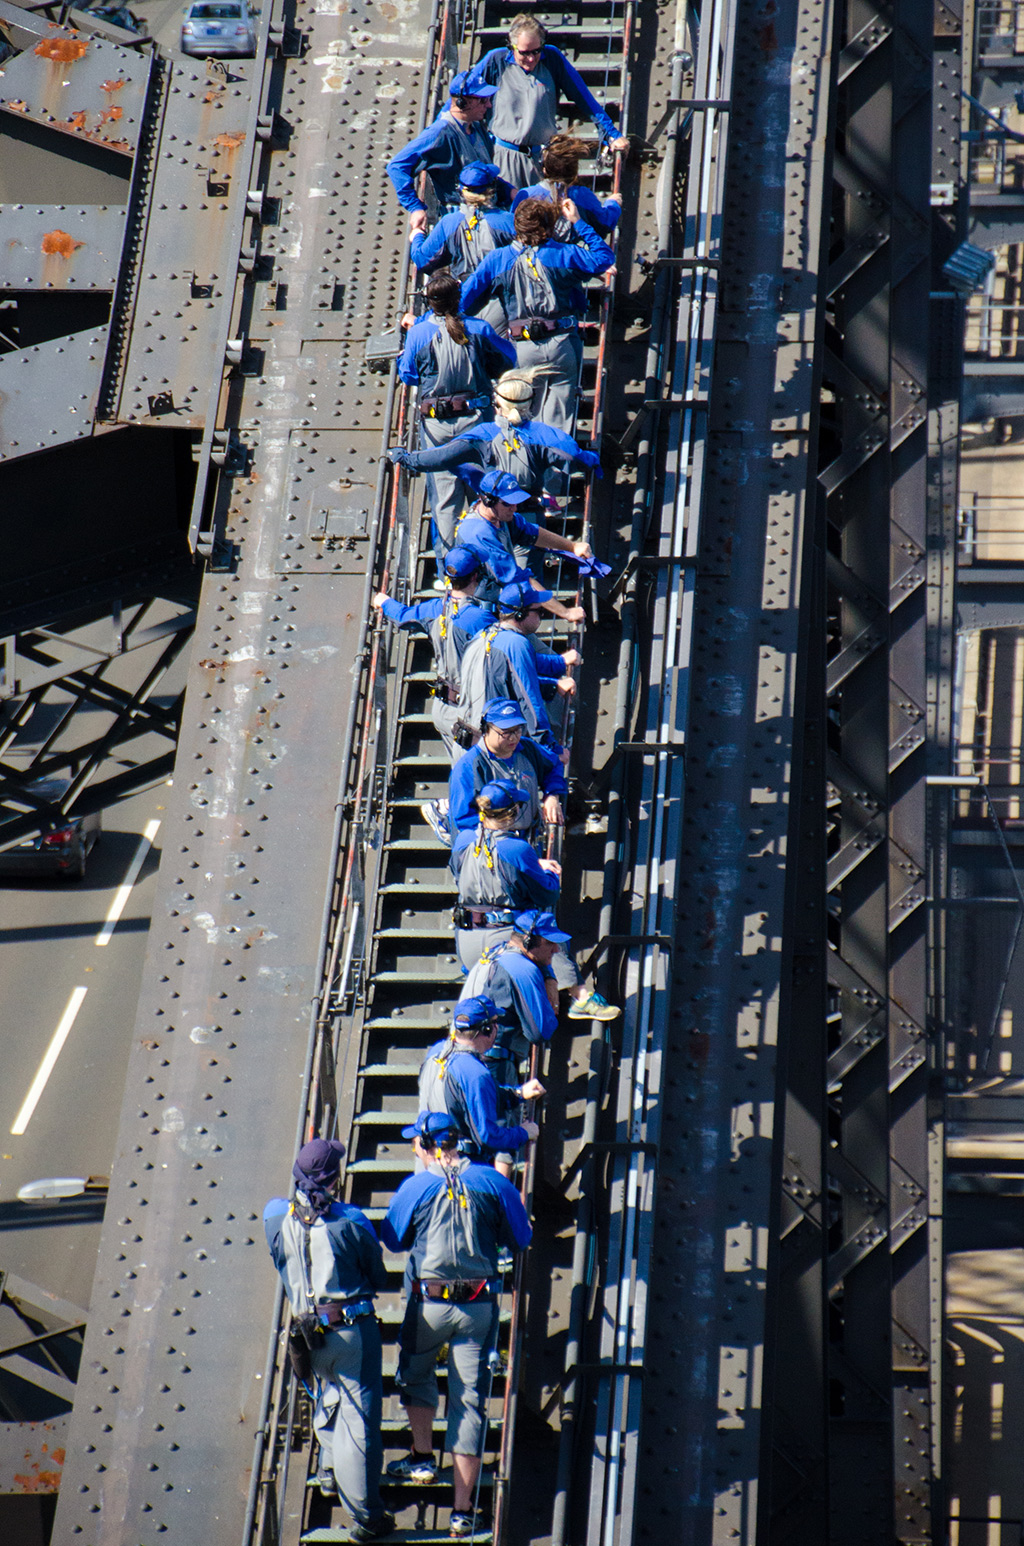 Climbers on the Sydney Harbour Bridge arch